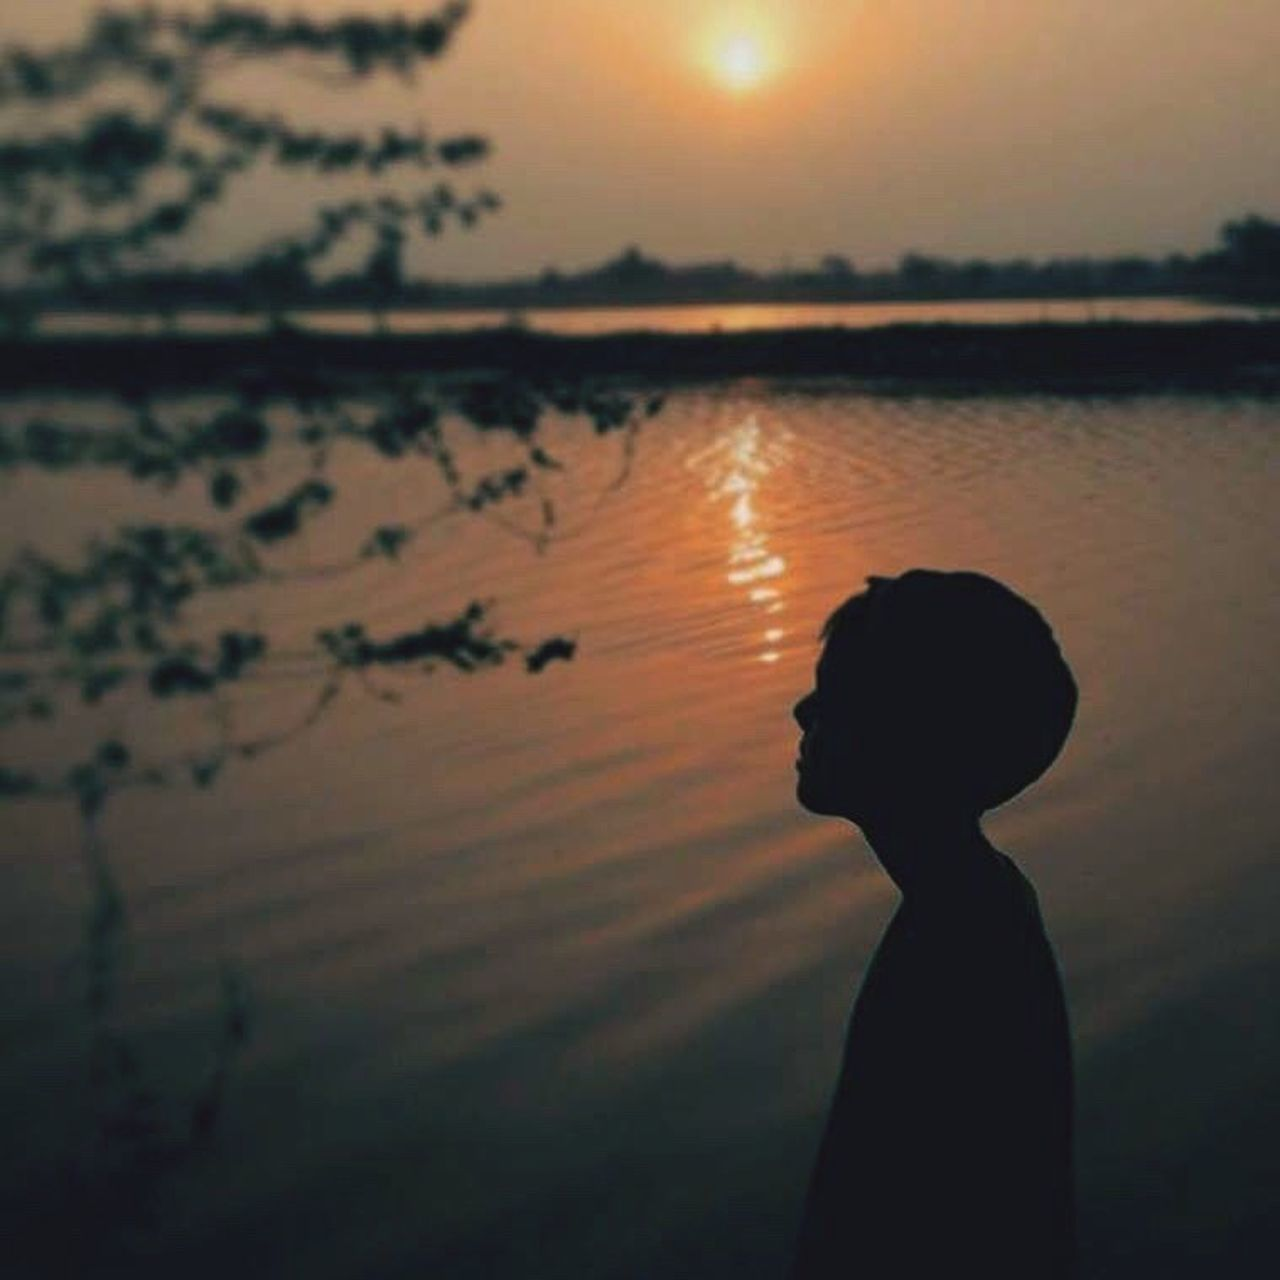 silhouette, sunset, one person, waist up, standing, nature, sun, lake, side view, water, outdoors, real people, tranquil scene, beauty in nature, scenics, sky, tranquility, lifestyles, tree, day, people